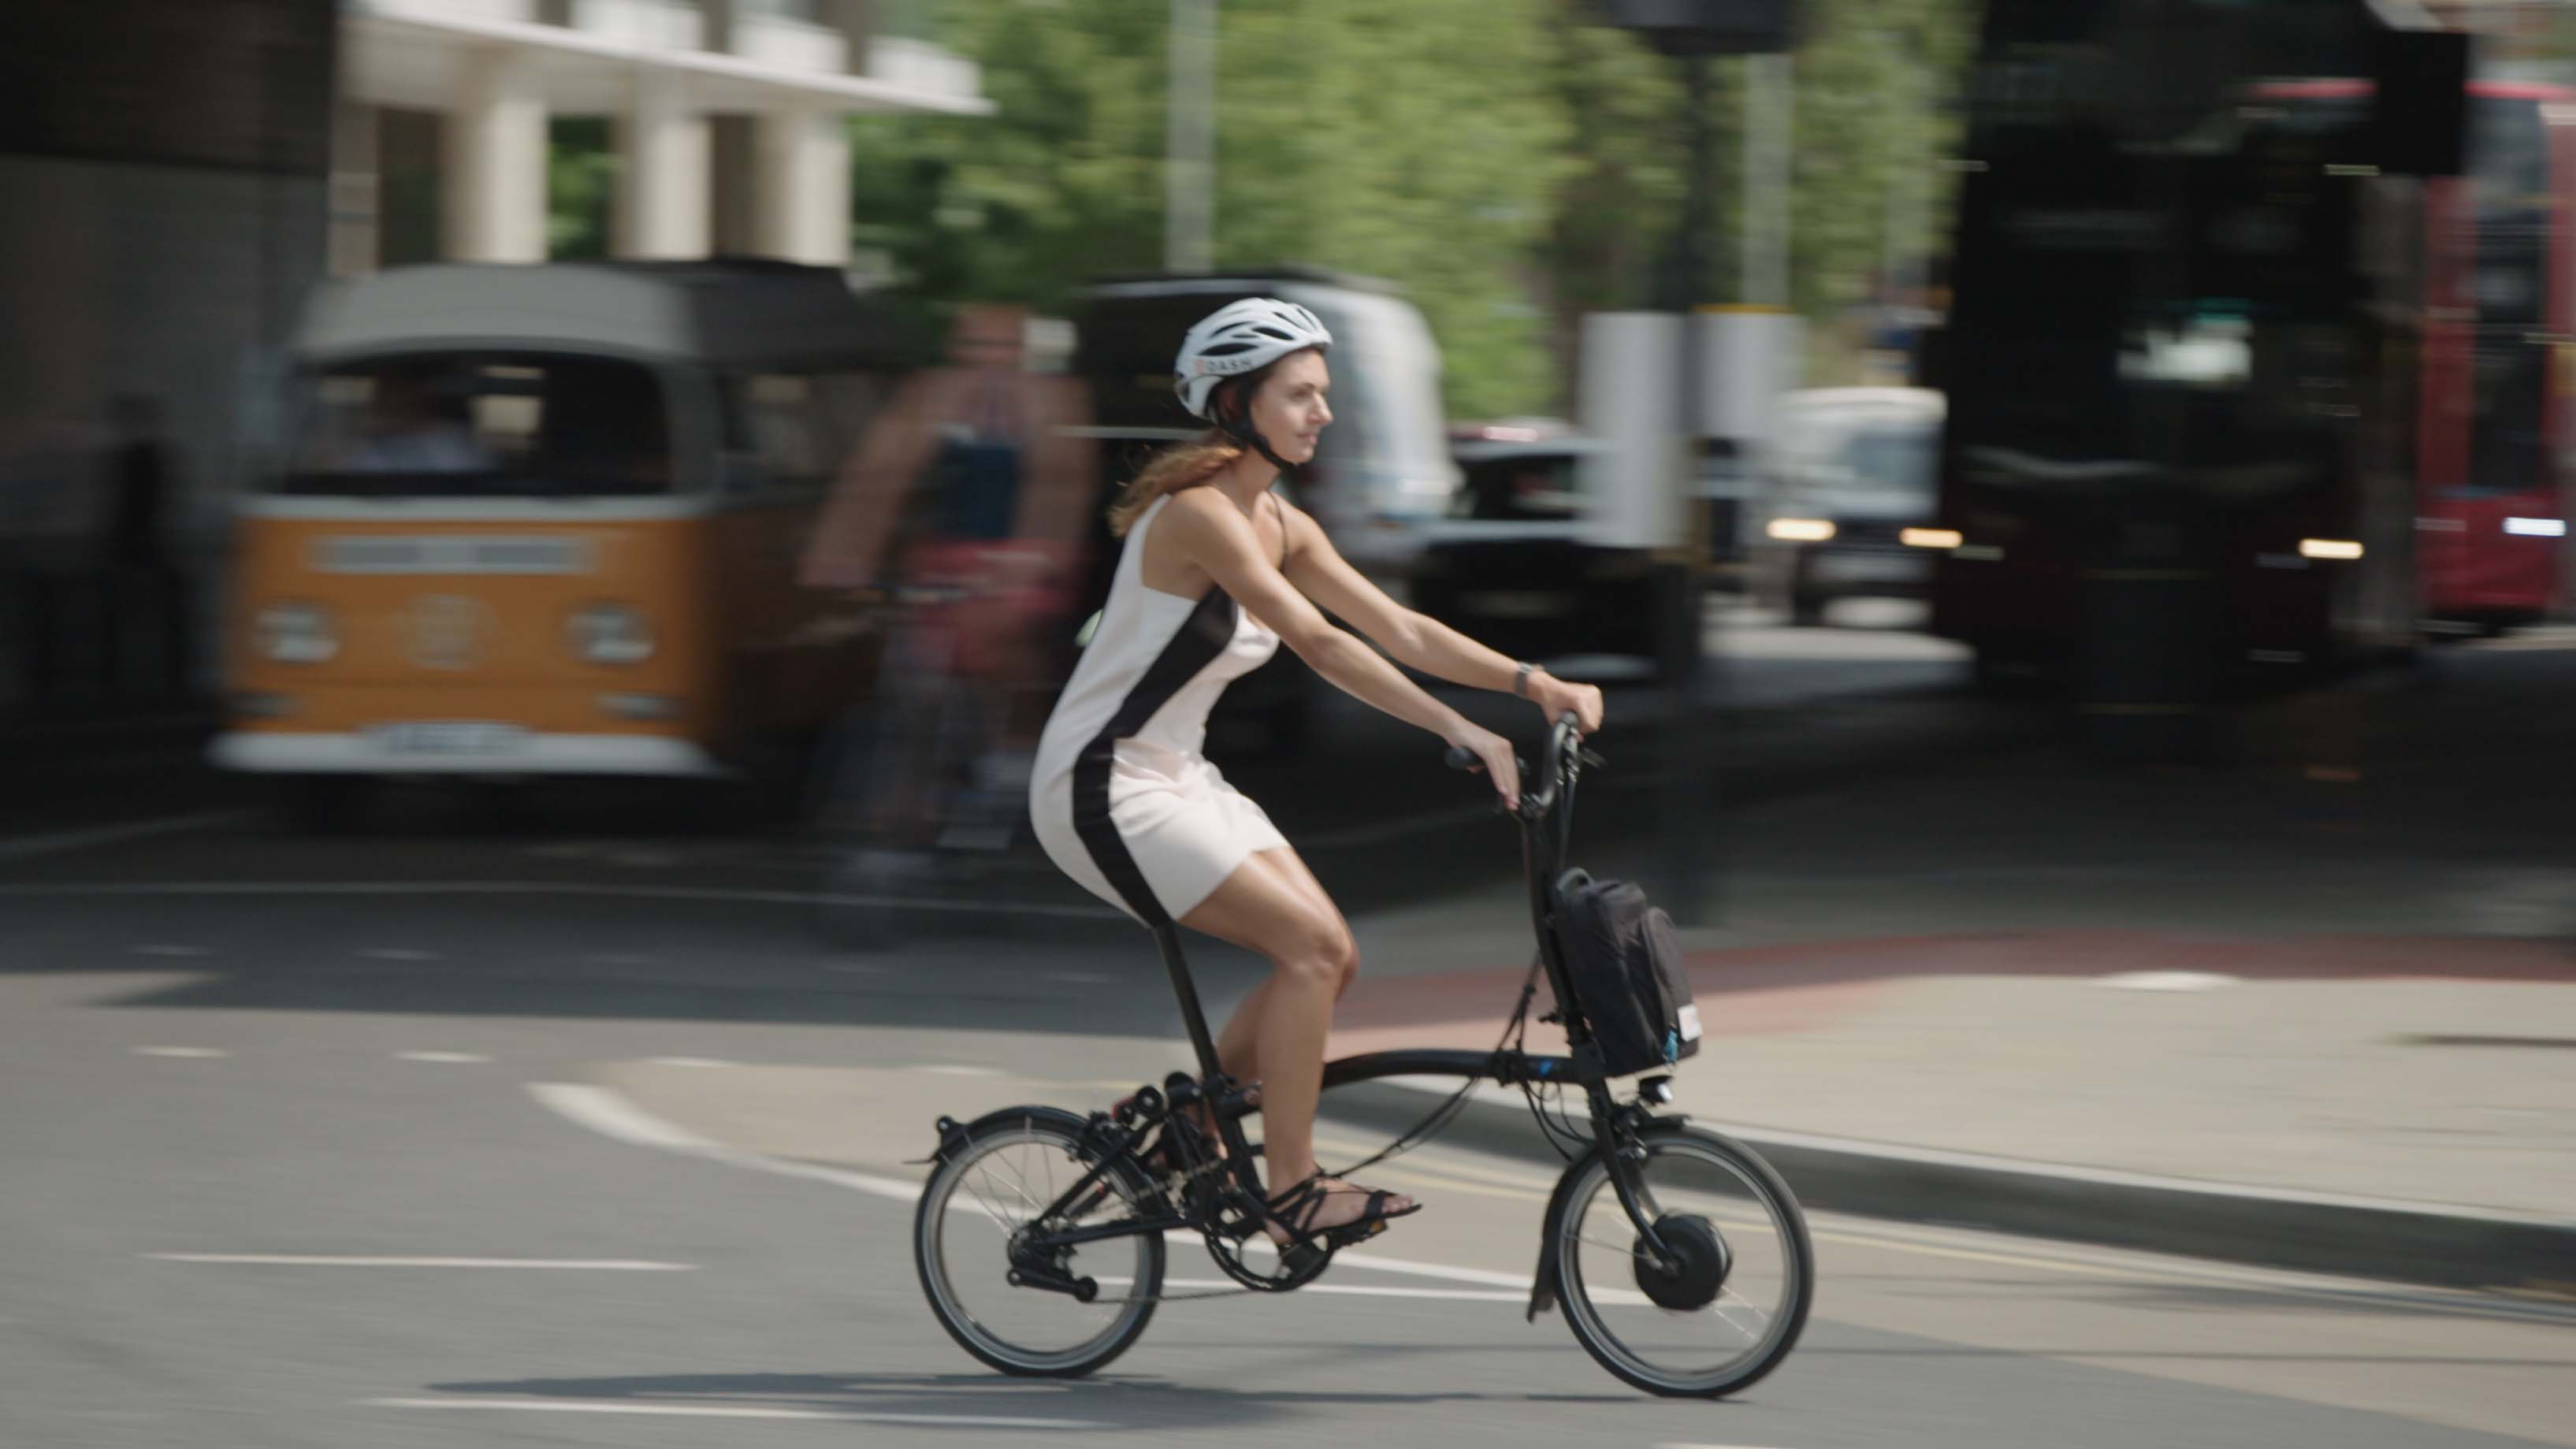 Return to work and avoid public transport with our guide to confident cycling in the city